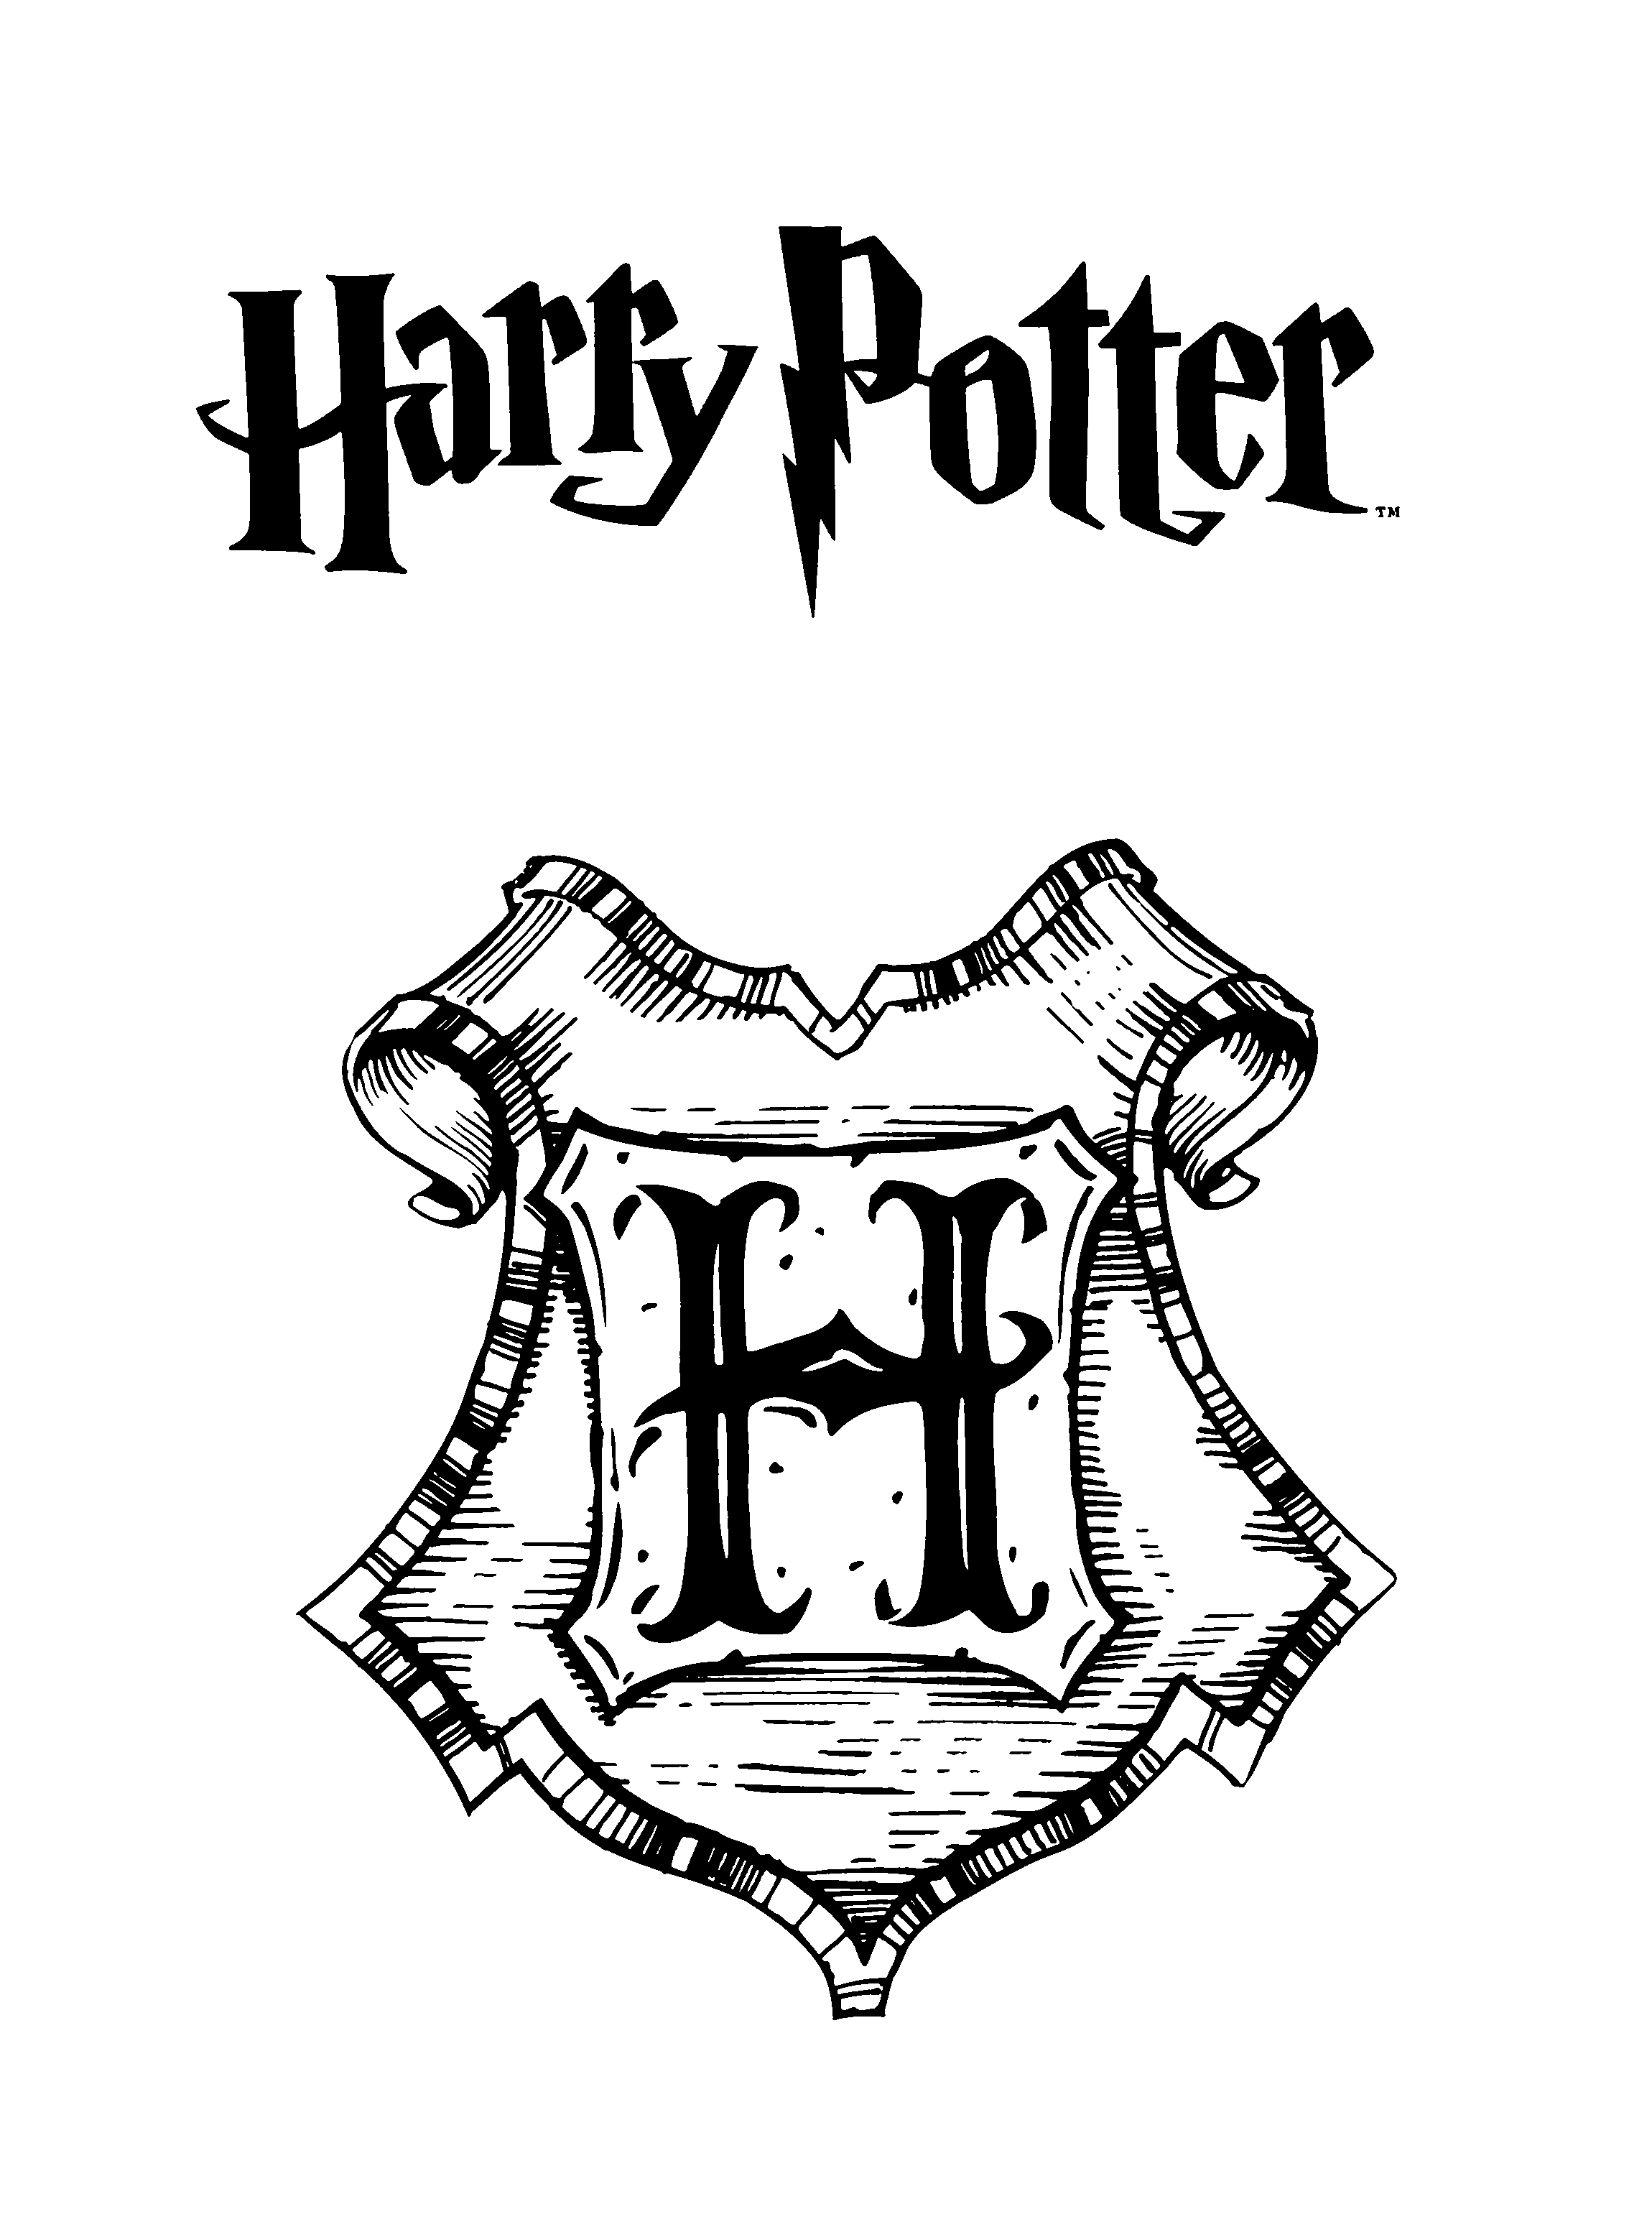 Harry Potter Crest Reading Harry Potter Pinterest Harry Potter